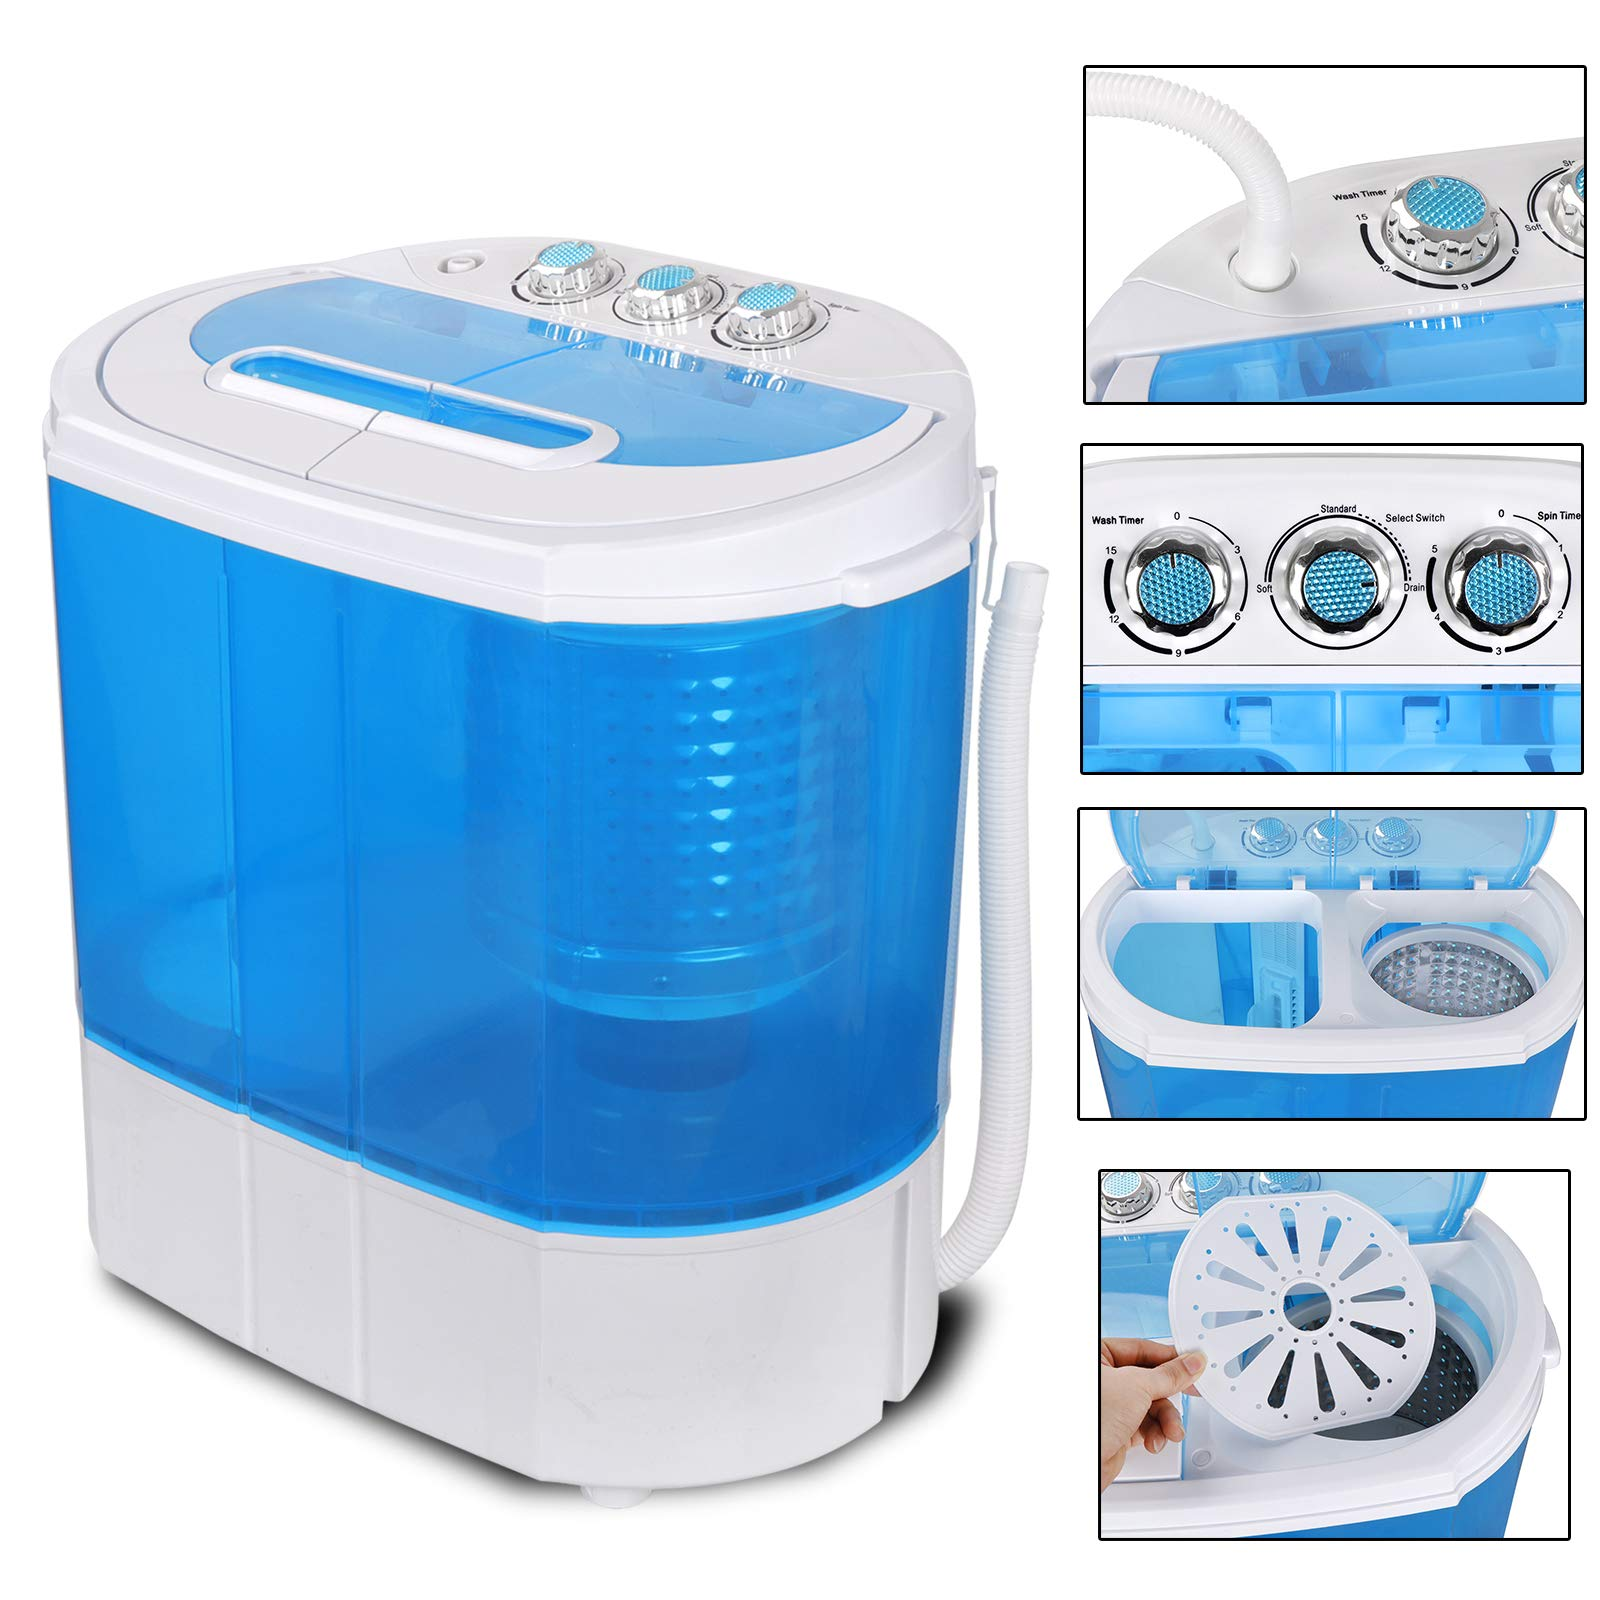 SUPER DEAL Portable Washing Machine Twin Tub 10lbs Capacity with Spin Cycle Dryer, Lightweight for Apartments, Dorm Rooms (10lbs) by SUPER DEAL